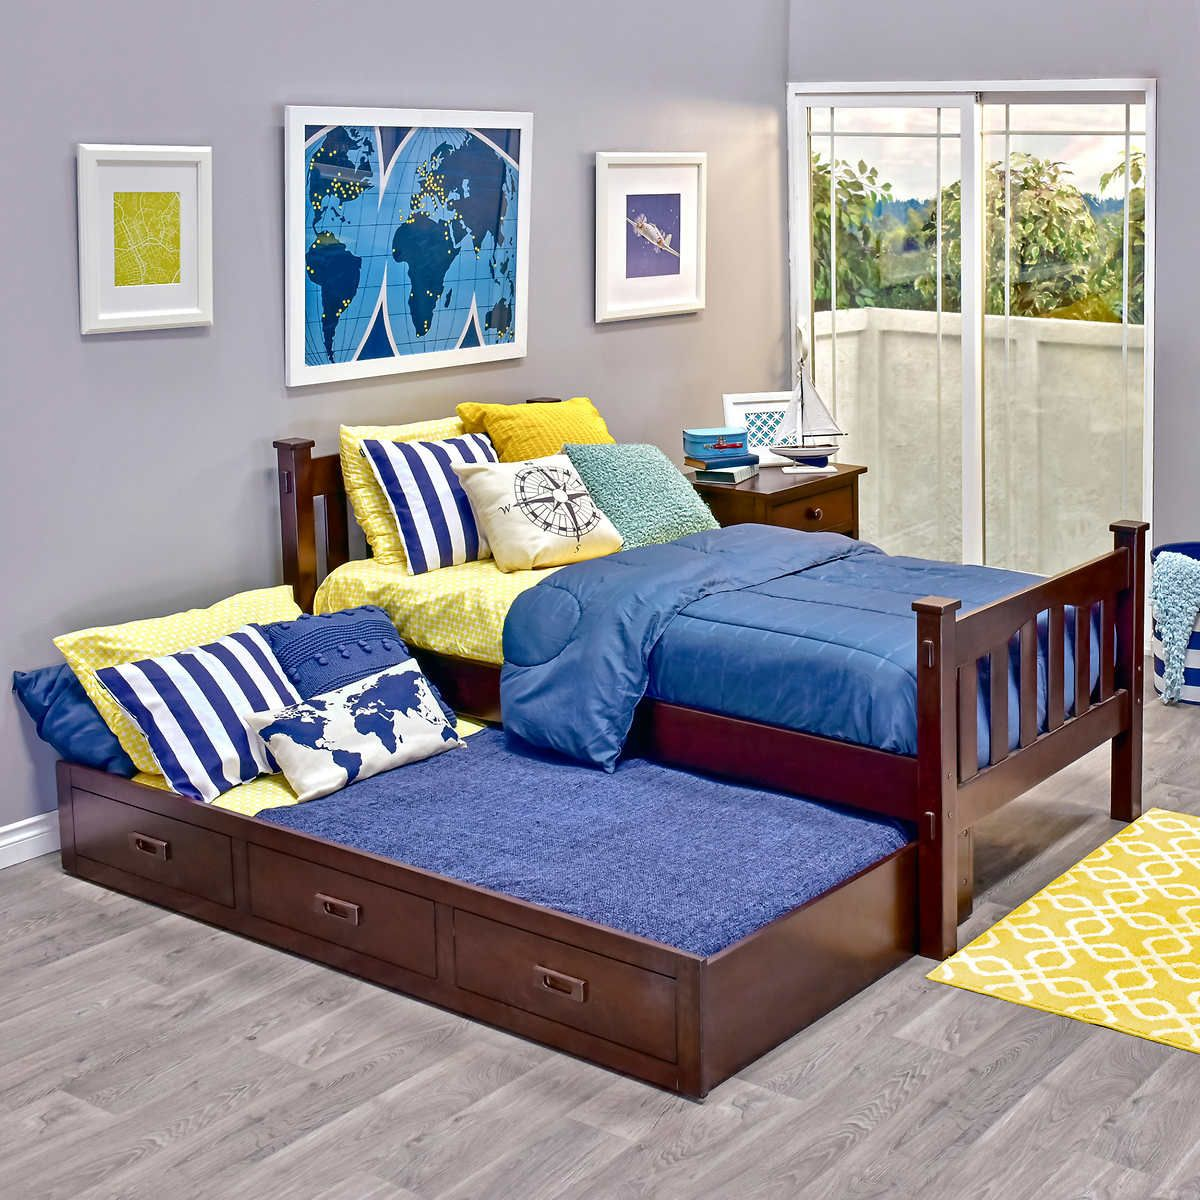 Pin by Sarah Brokman on Boys bedroom Twin trundle bed